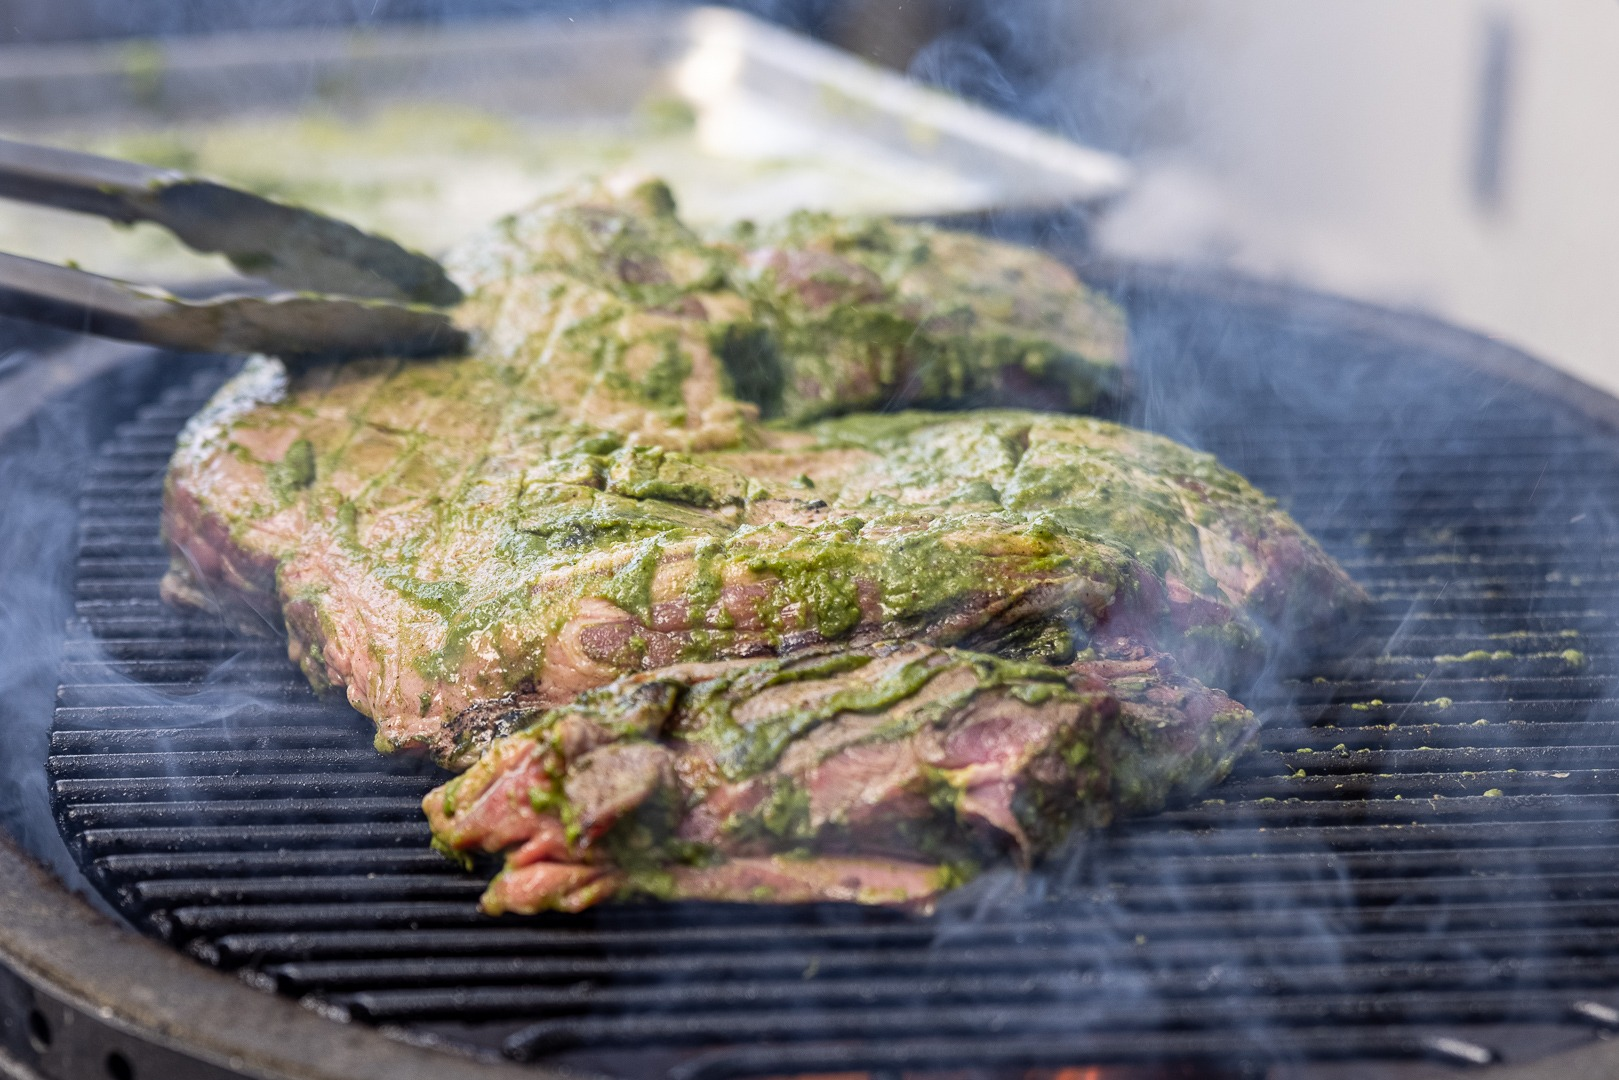 the leg of lamb on the grill